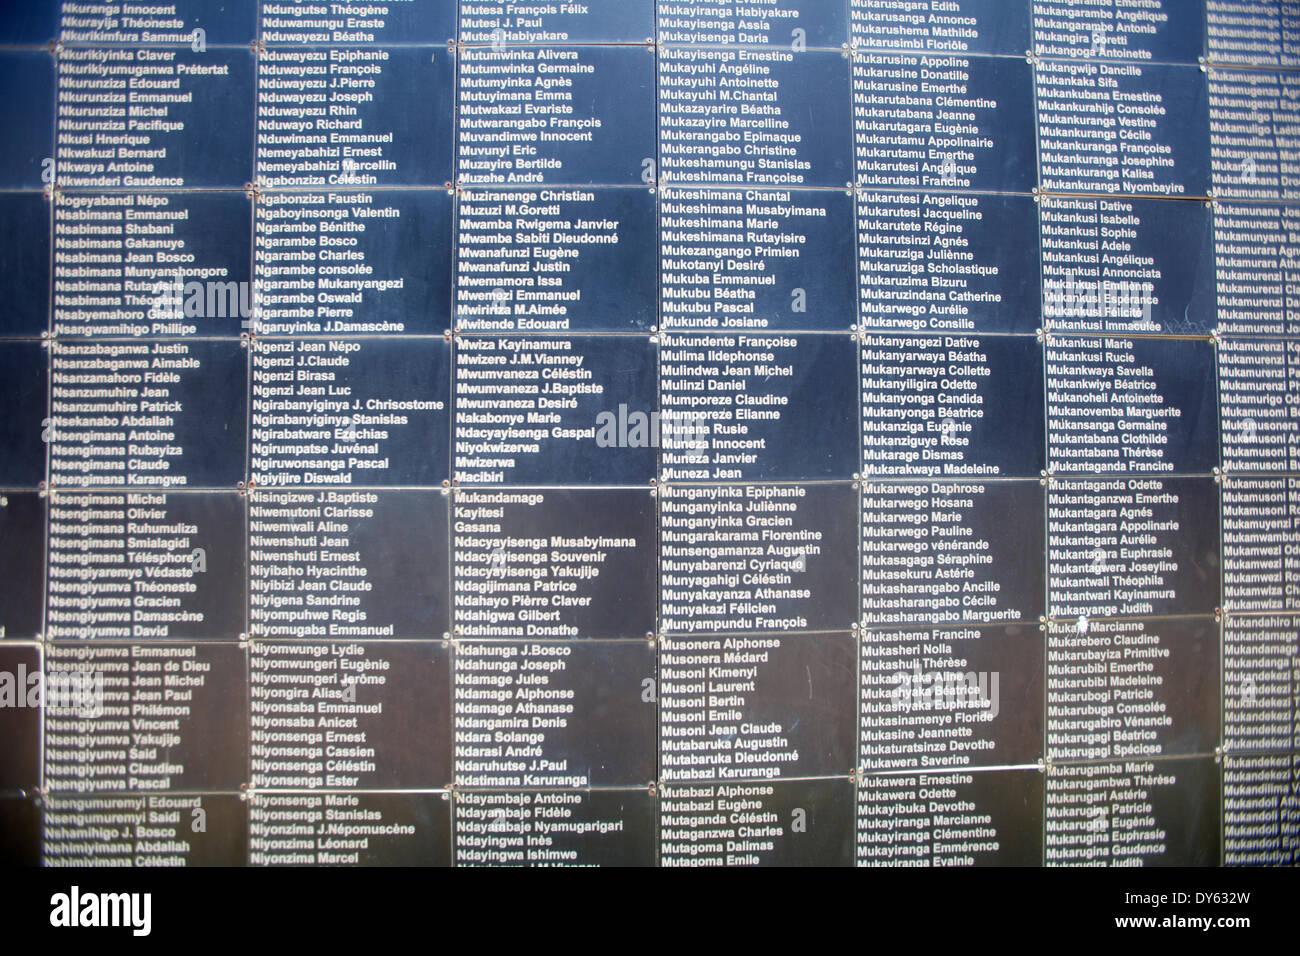 Kigali, Rwanda. 6th April 2014. A wall of remembrance outside The Kigali Genocide Memorial Centre with some of the Stock Photo